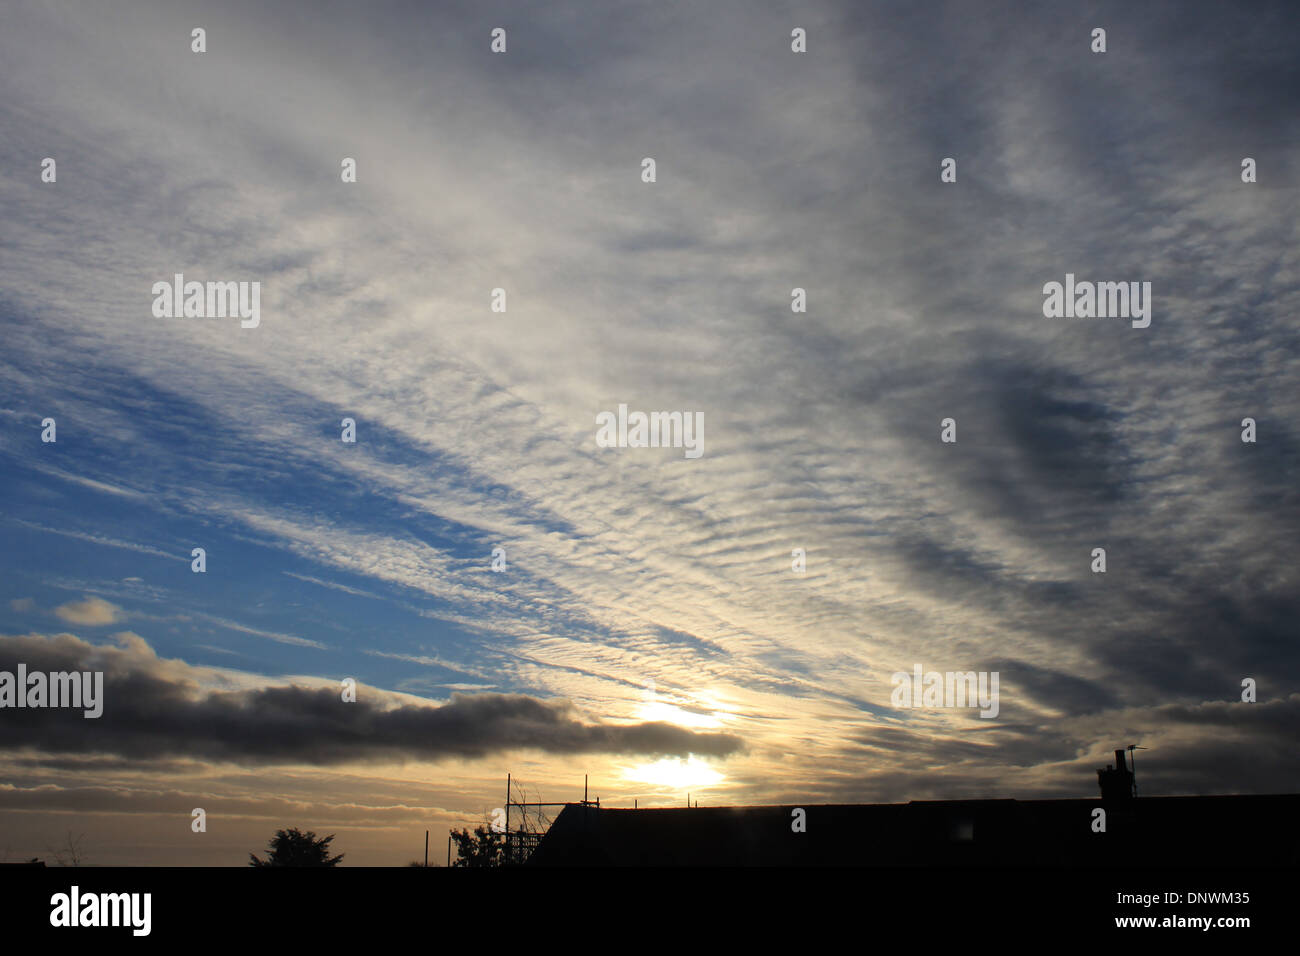 Interesting cumulus, cirrocumulus and cirrus cloud formations at sun rise on a winter's morning in Hampshire, UK - Stock Image